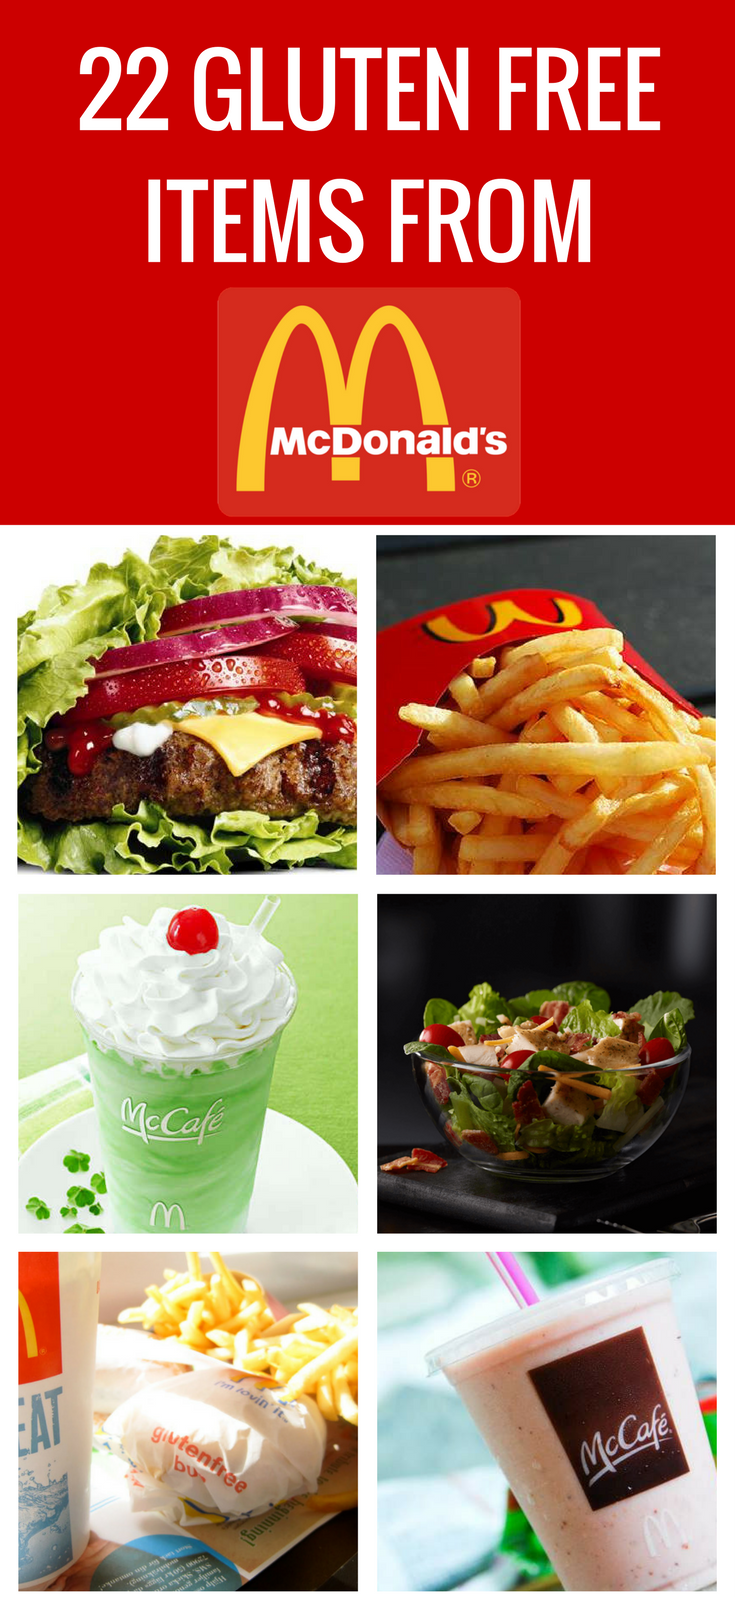 is anything at mcdonalds gluten free